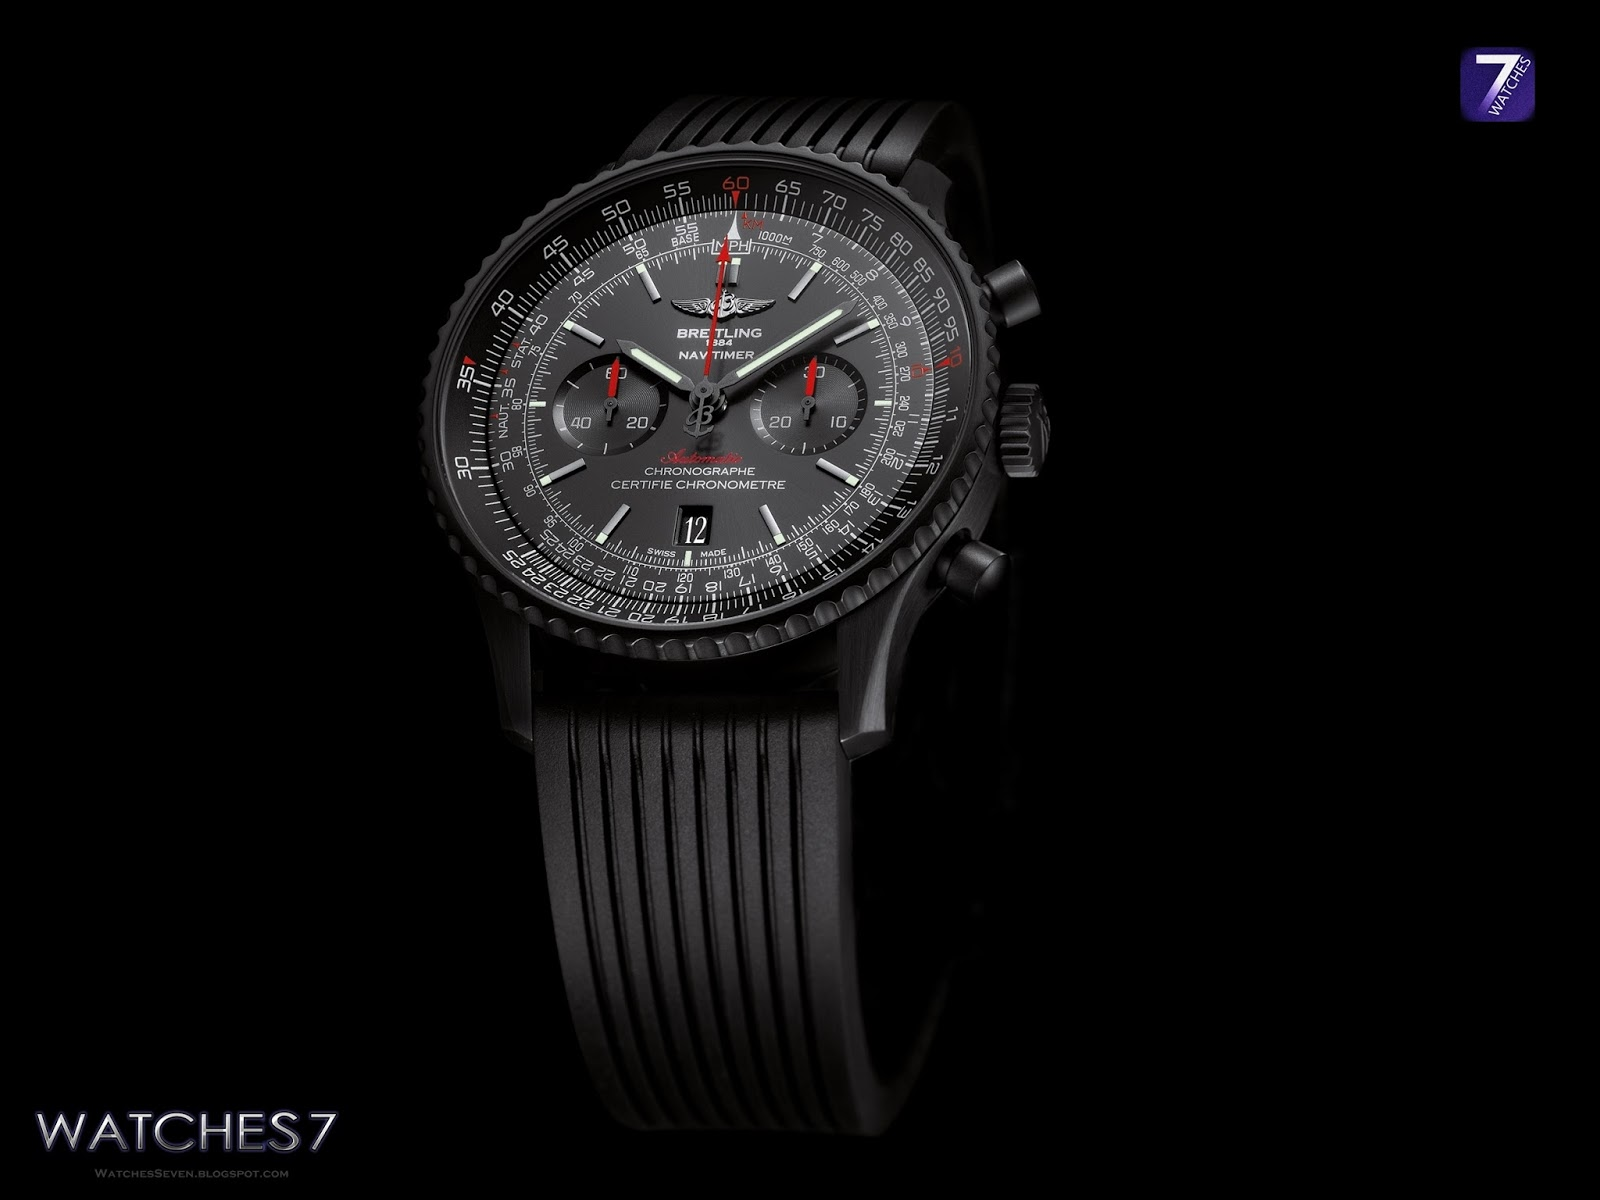 d9dc51d99d1 The legend turns black. A highly exclusive version of the large-size  Navitimer